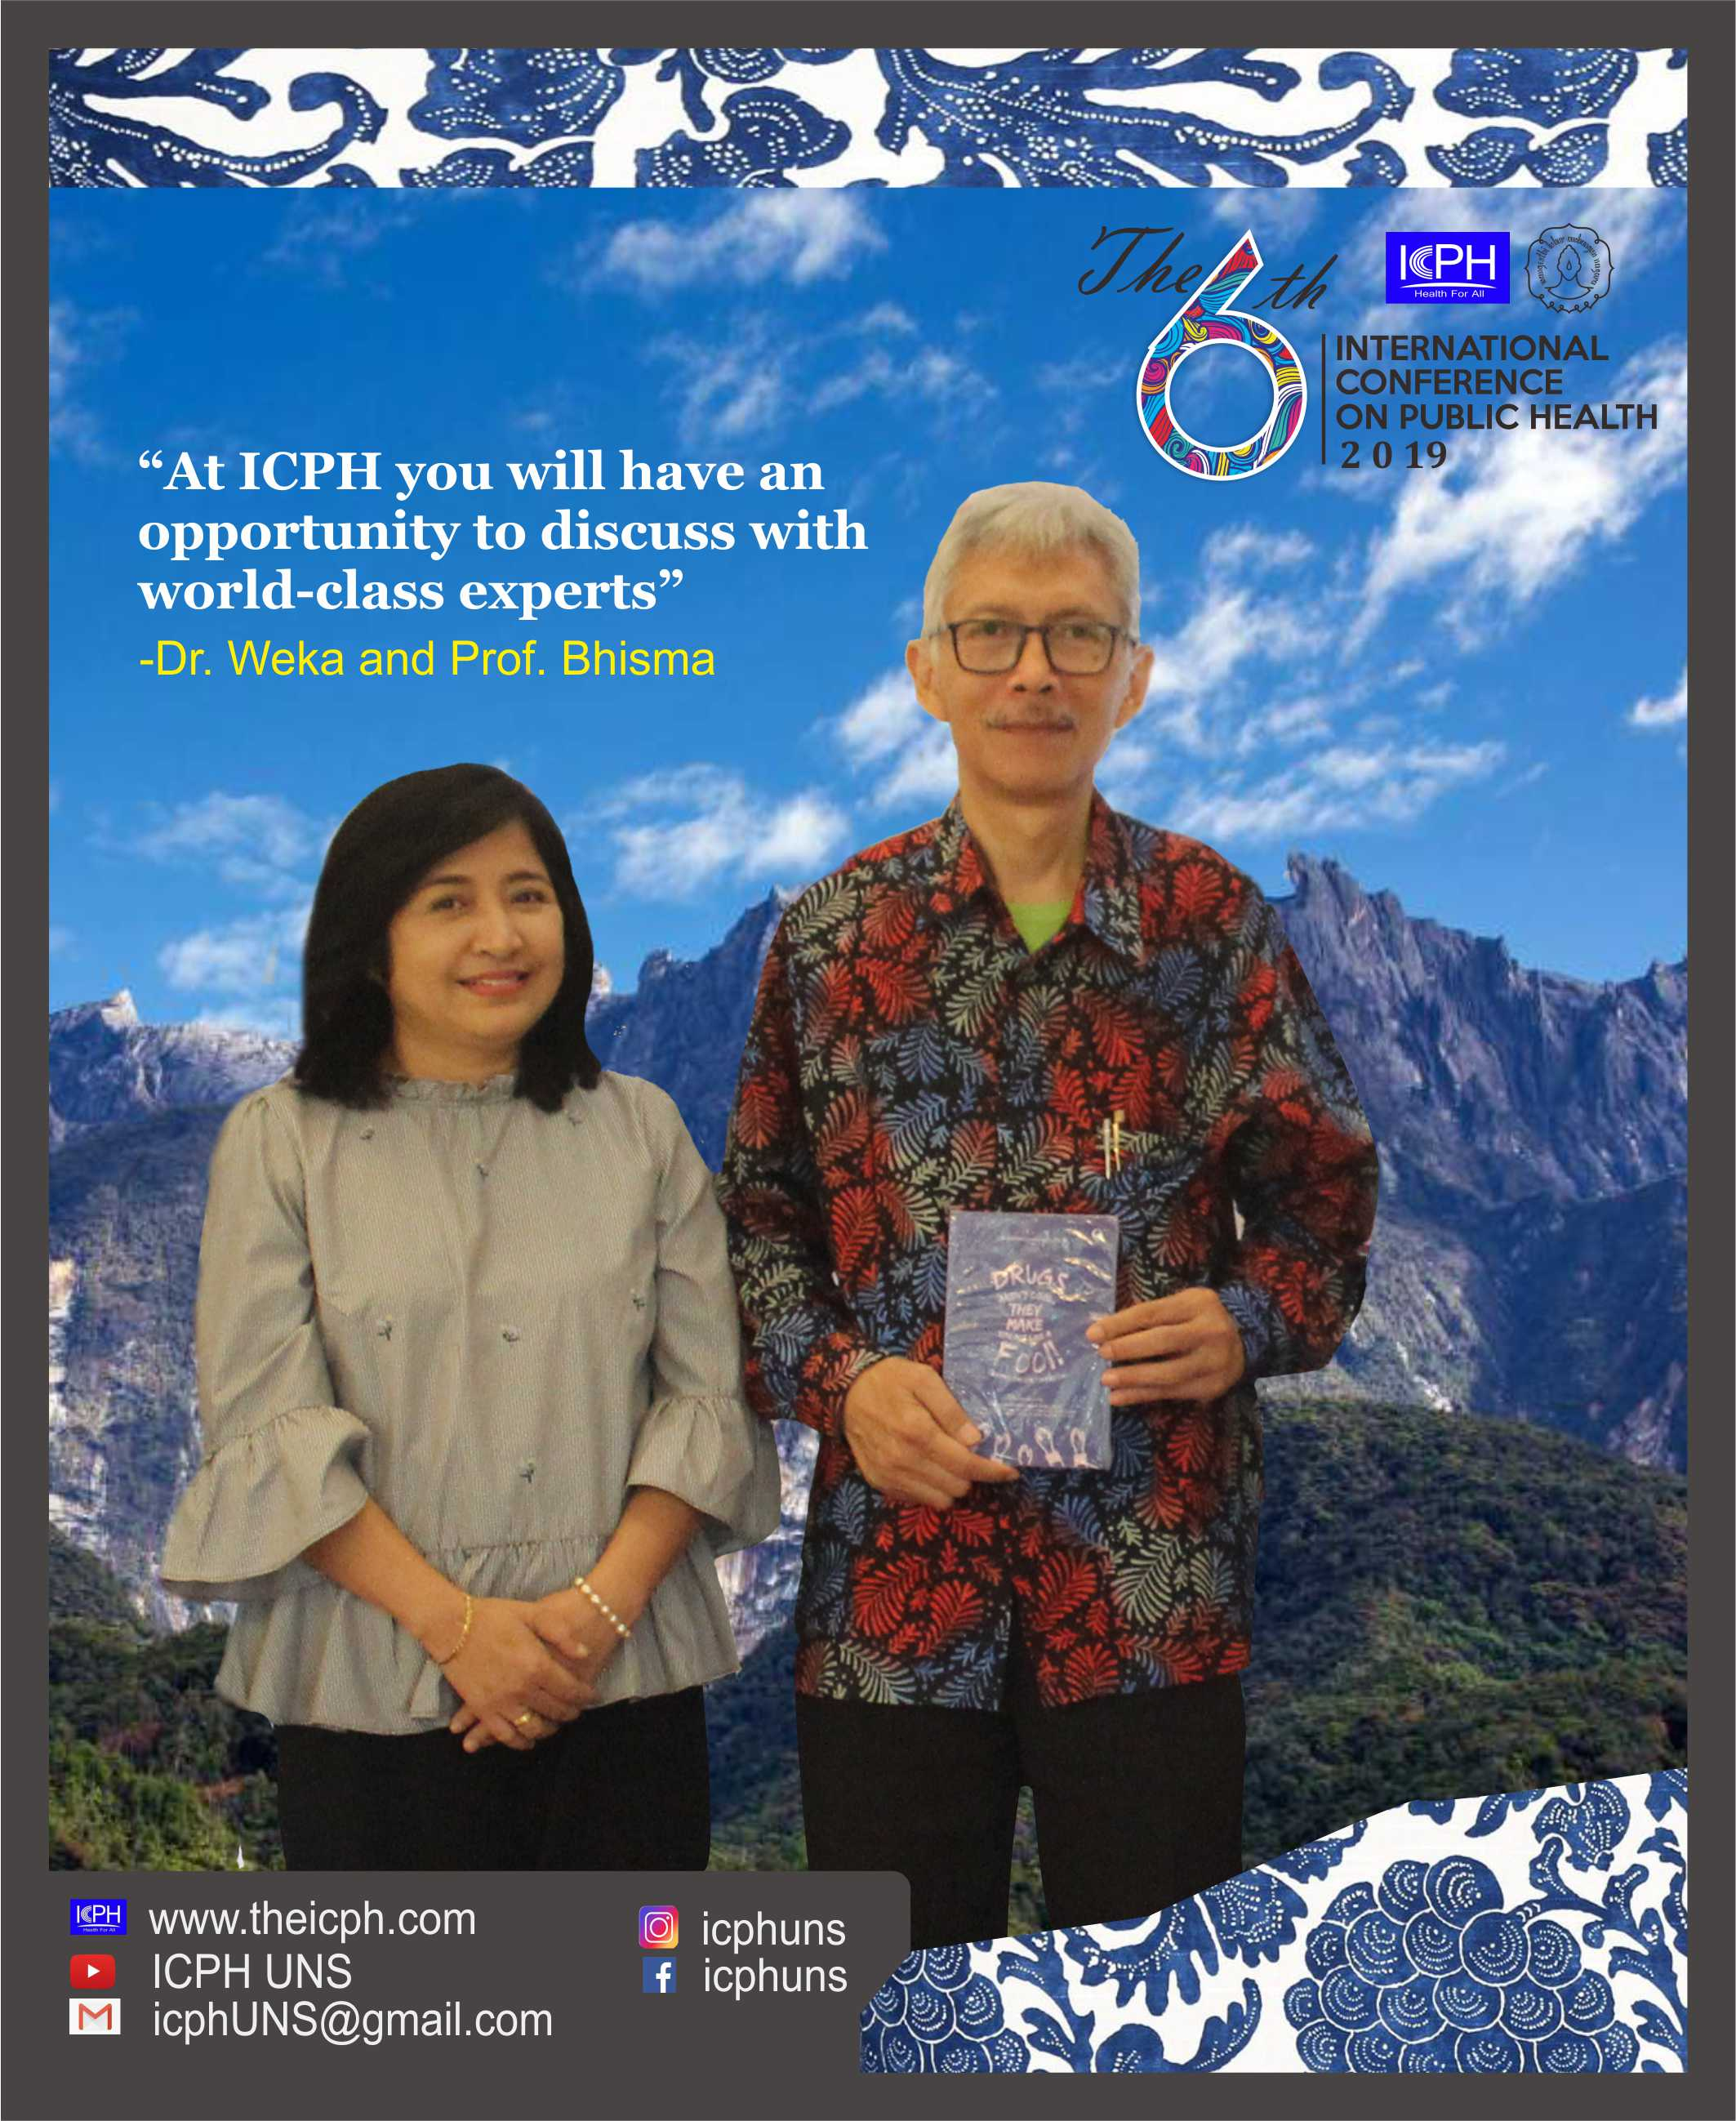 TEMPLATE 6TH ICPH OK DR WEKA AND PROF BHISMA